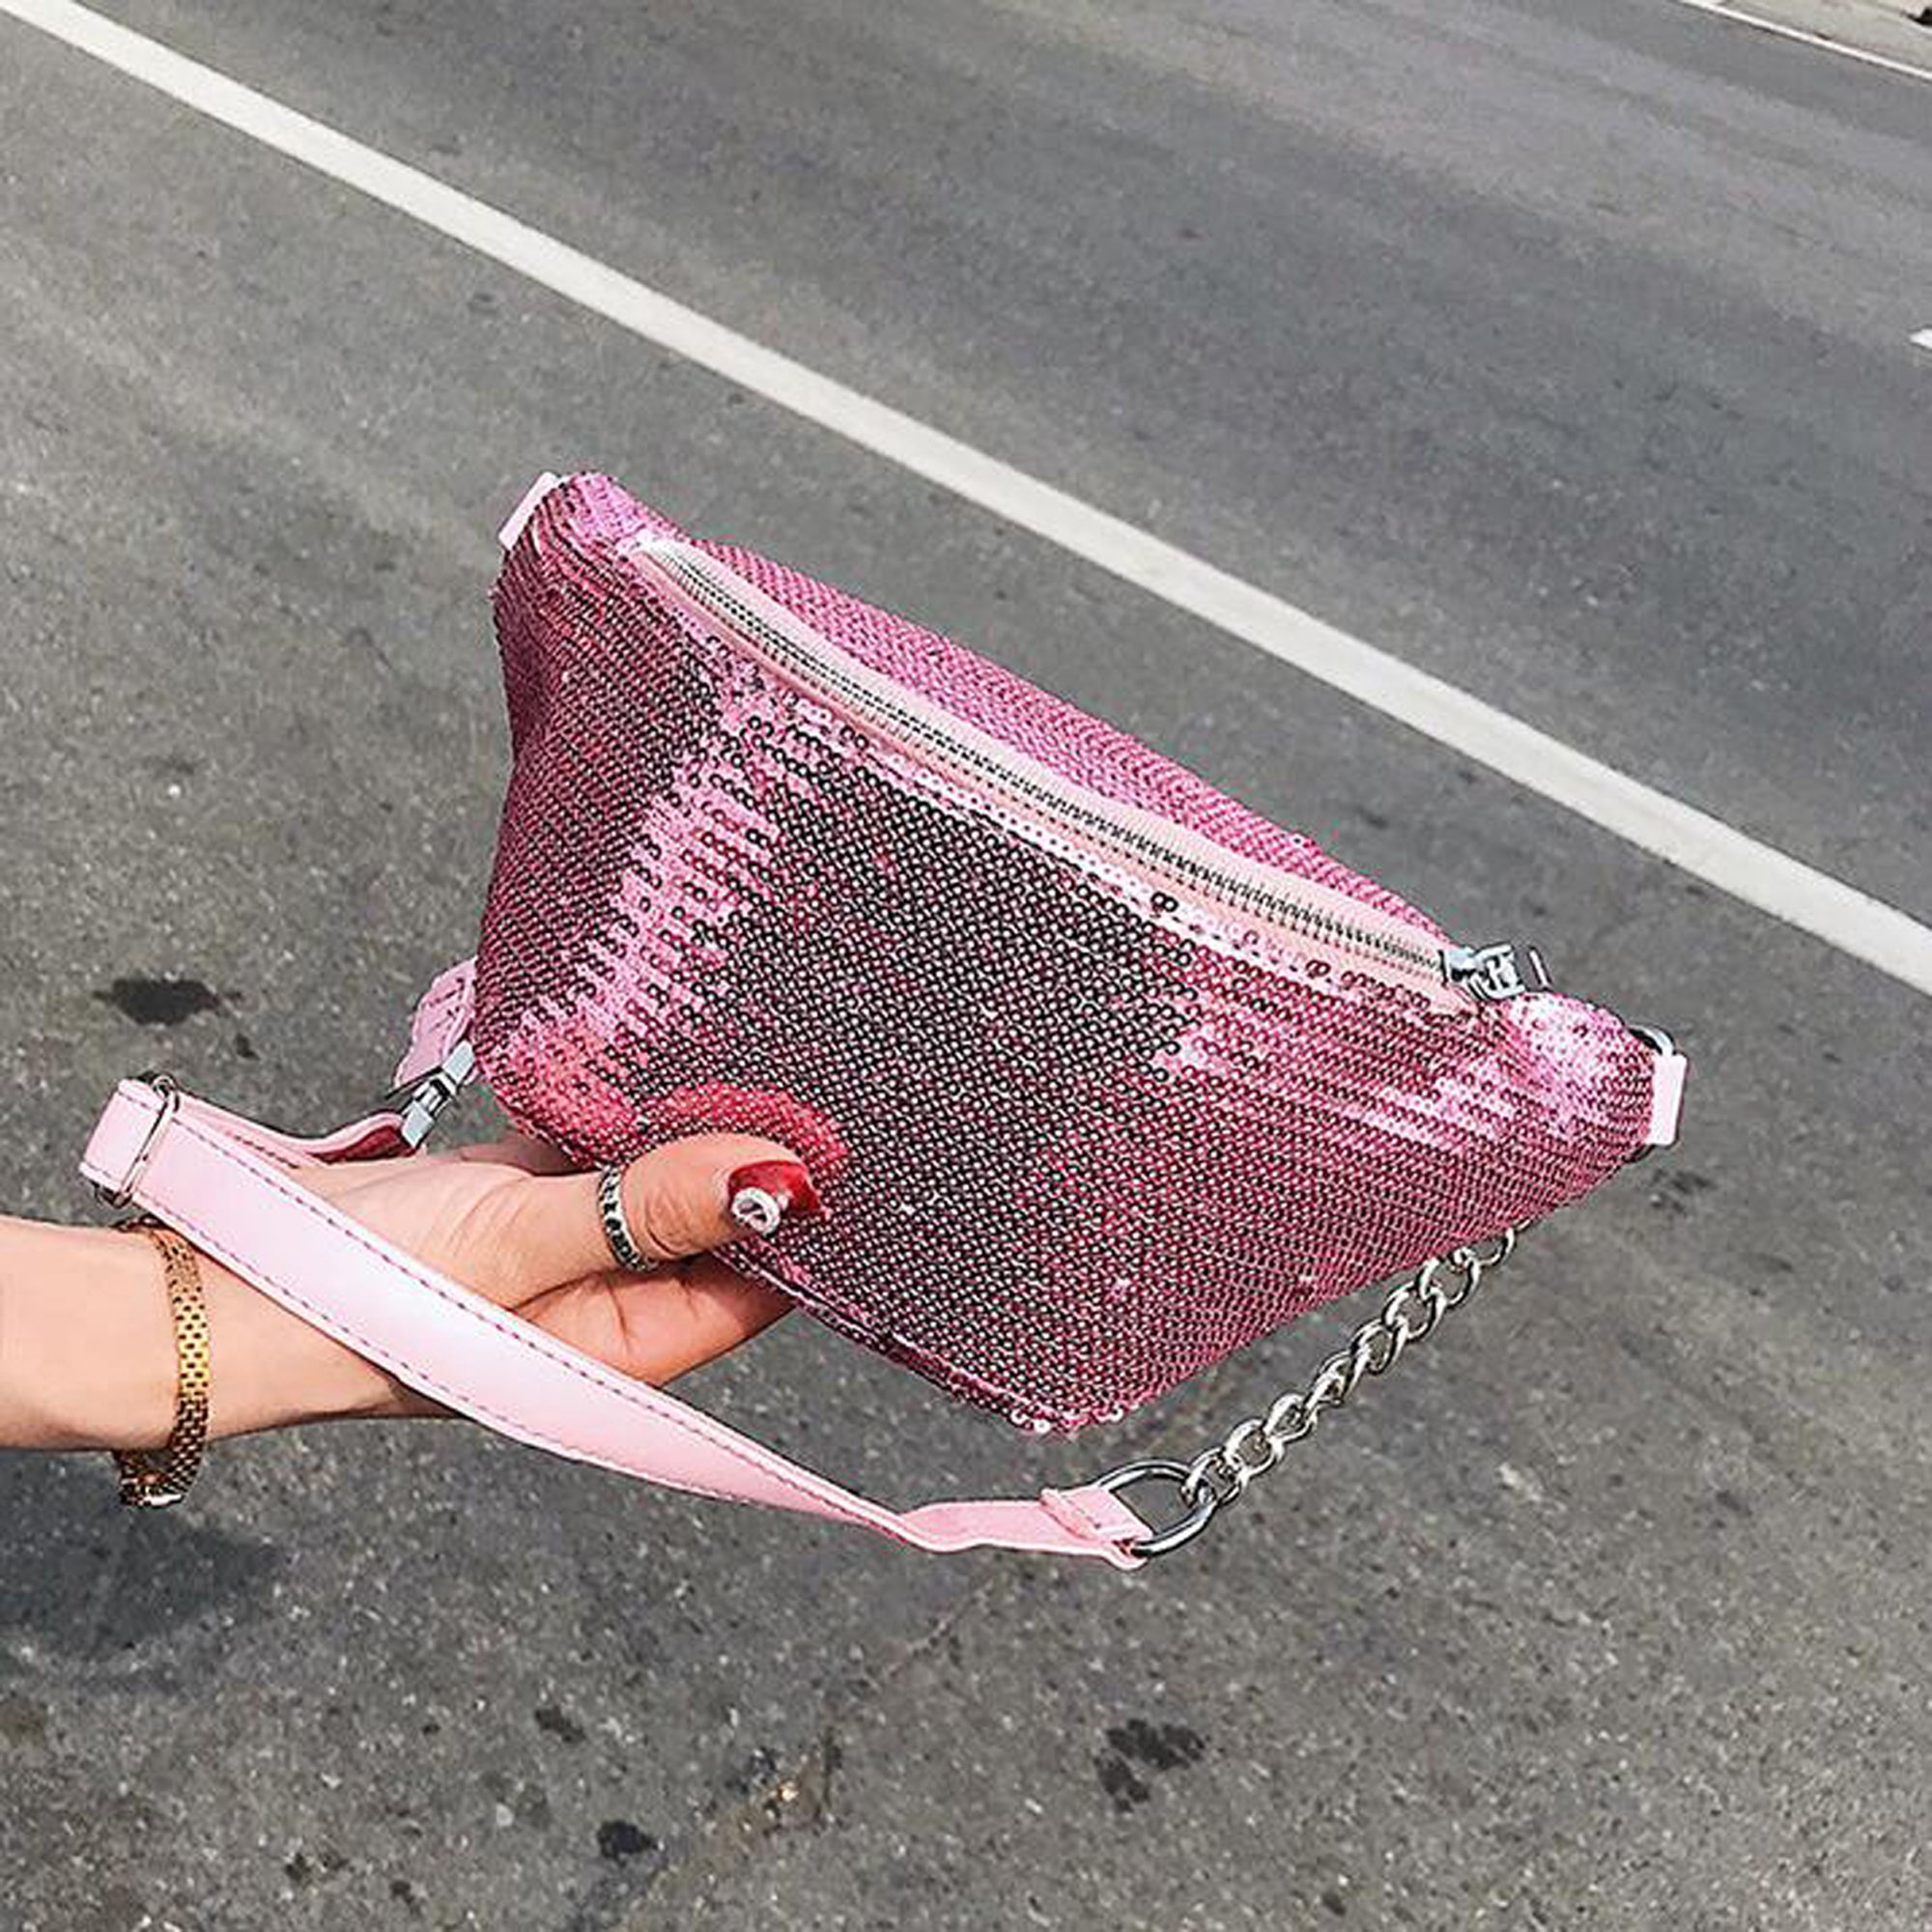 Womens Sequined Waist Fanny Pack Belt Pouch Sling Chest Bag Crossbody Hip Purse (pink) by JIANBAO (Image #7)